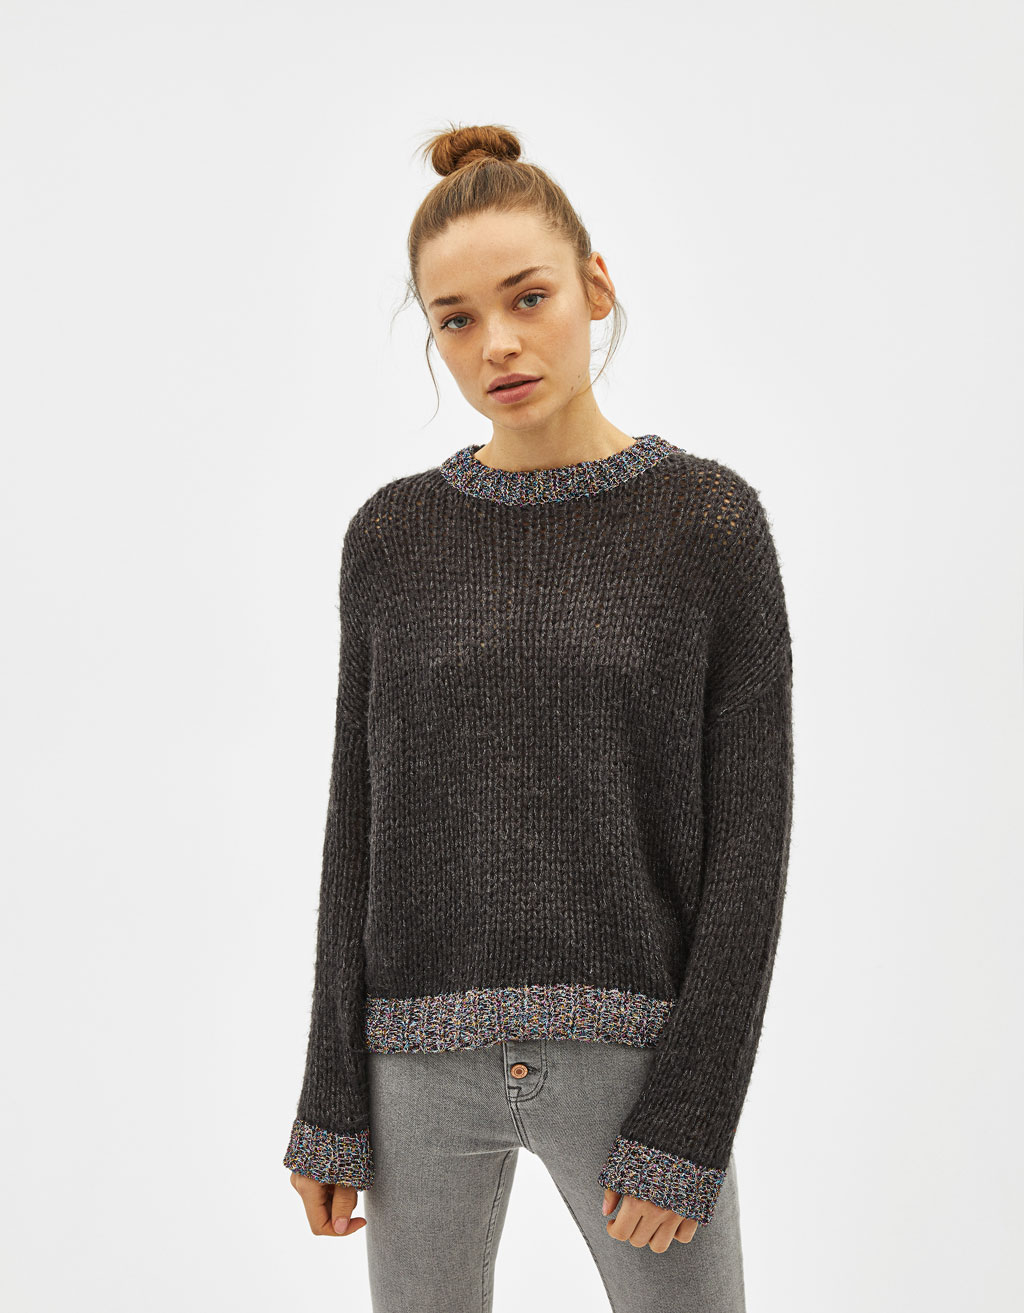 Sweater with metallic thread trims